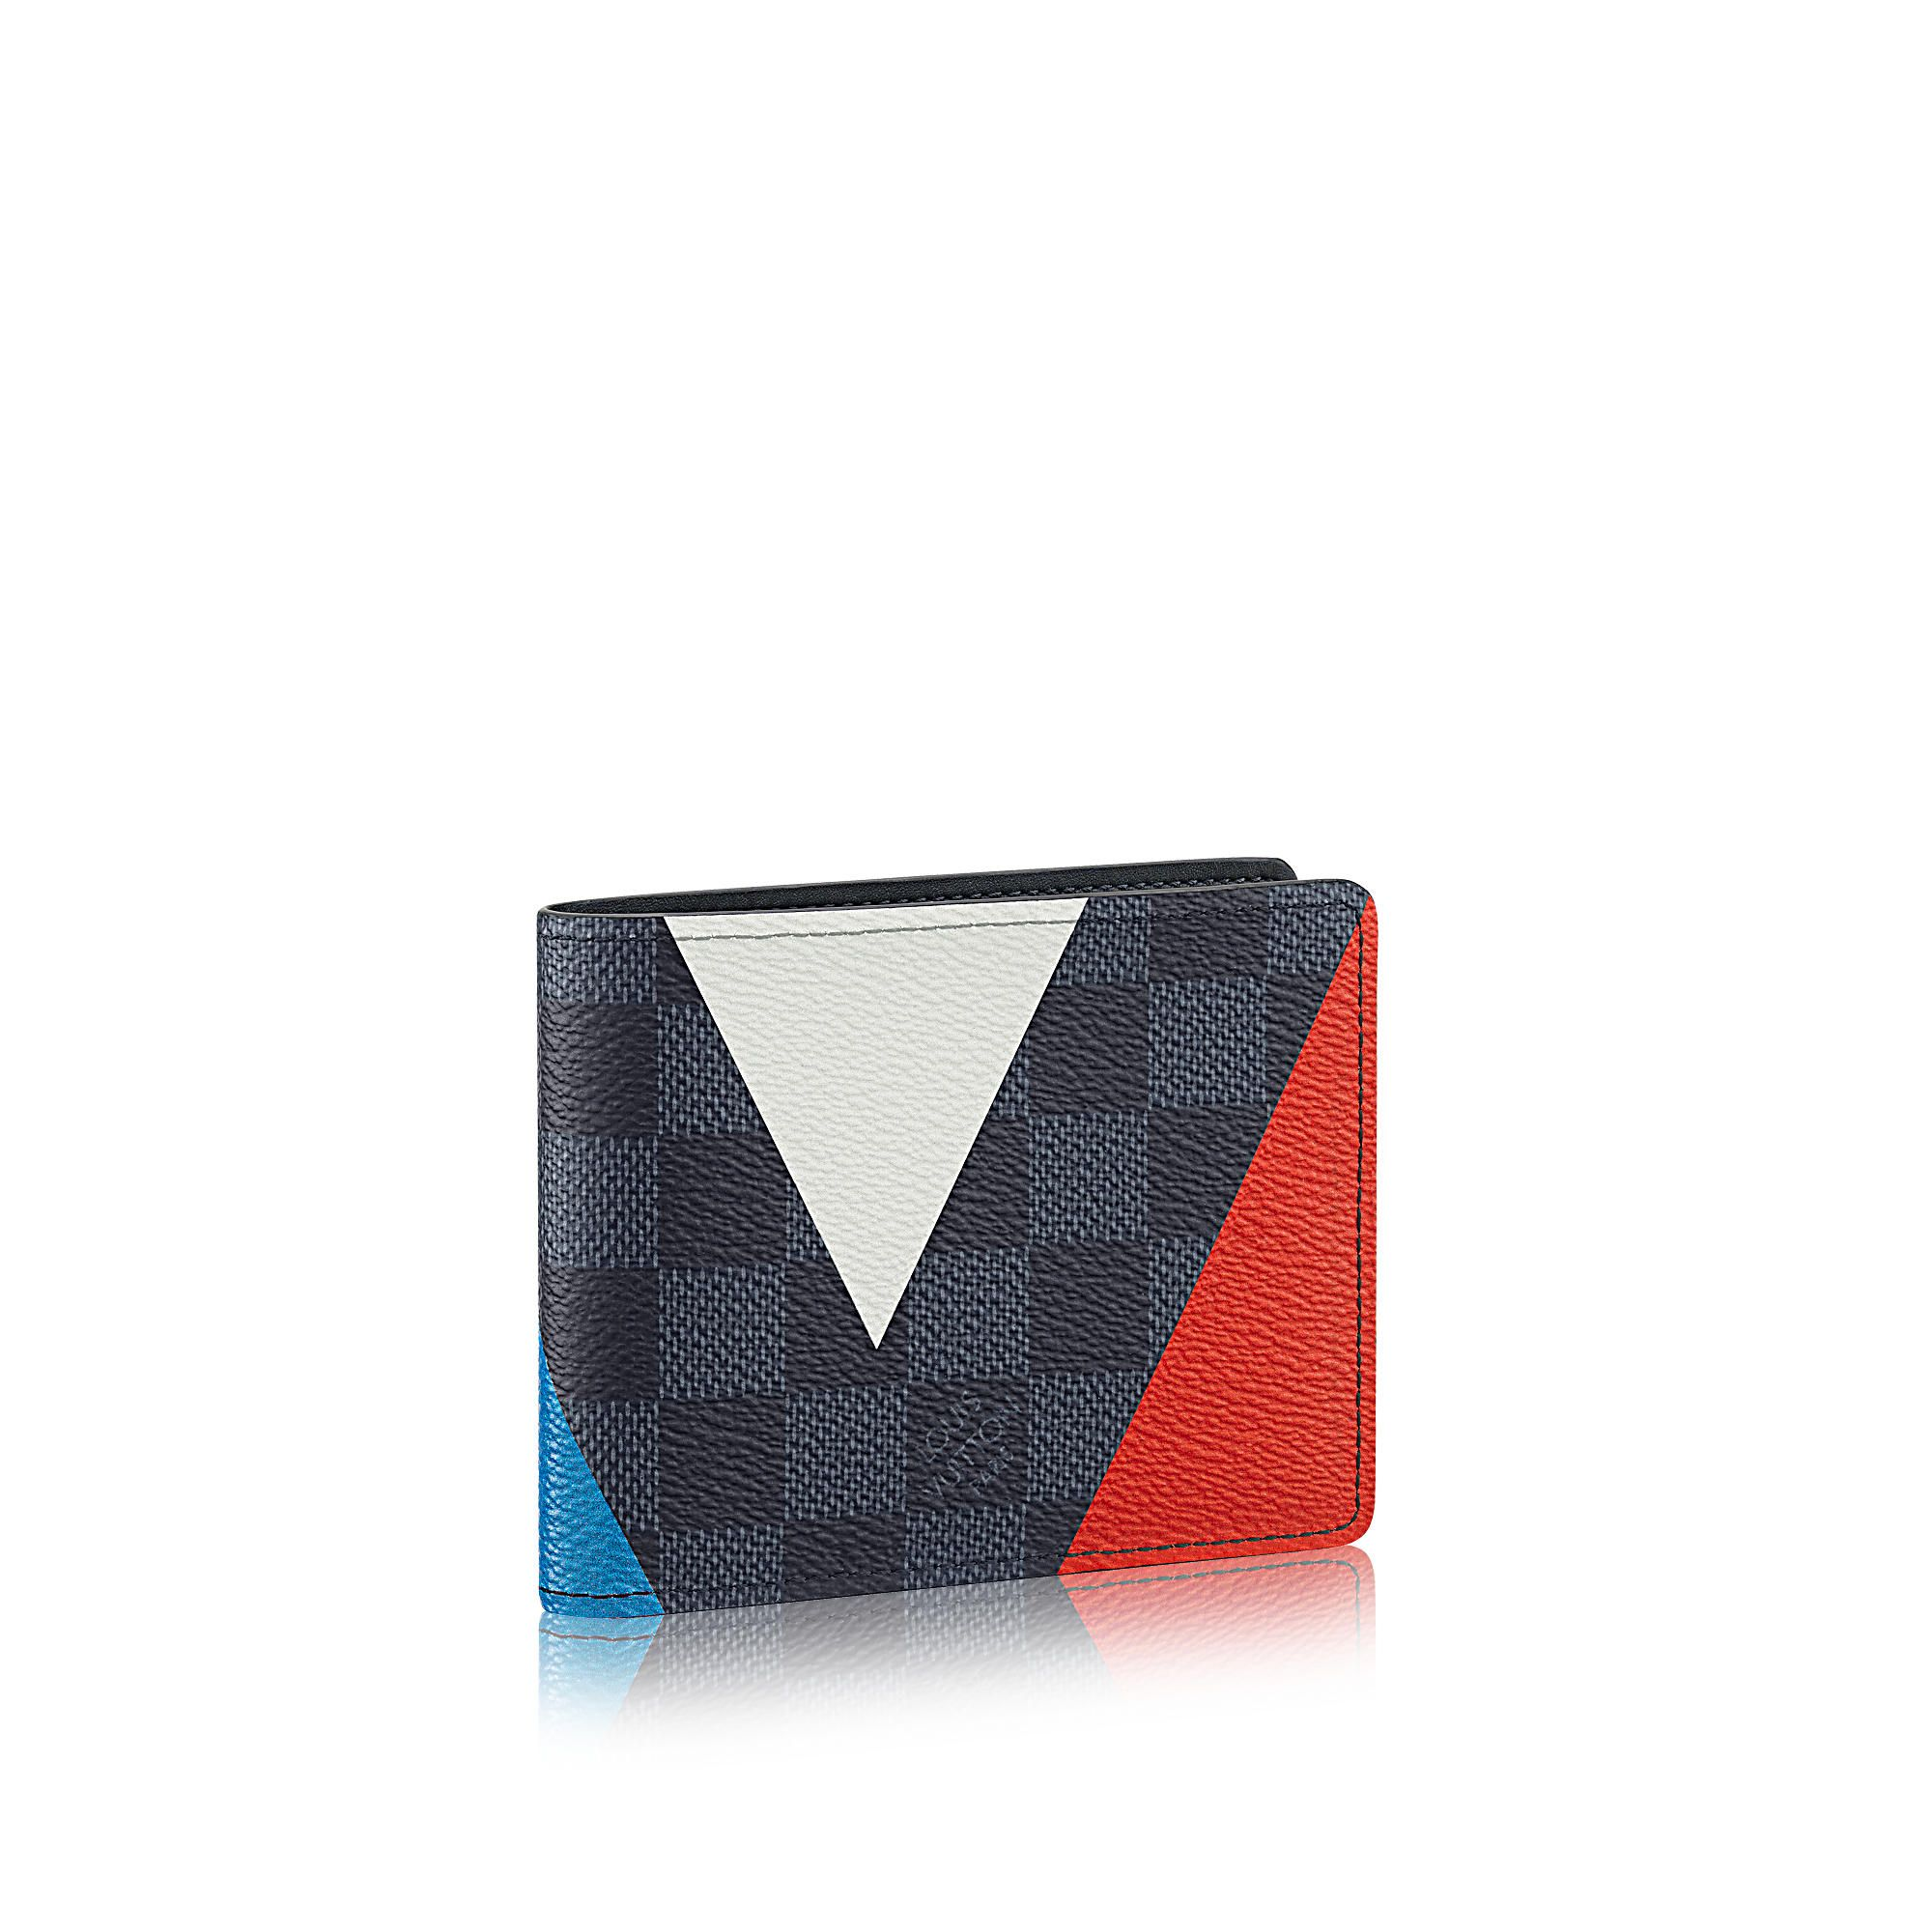 531882526a0 Image result for Louis Vuitton America's Cup Collection wallet | amr ...